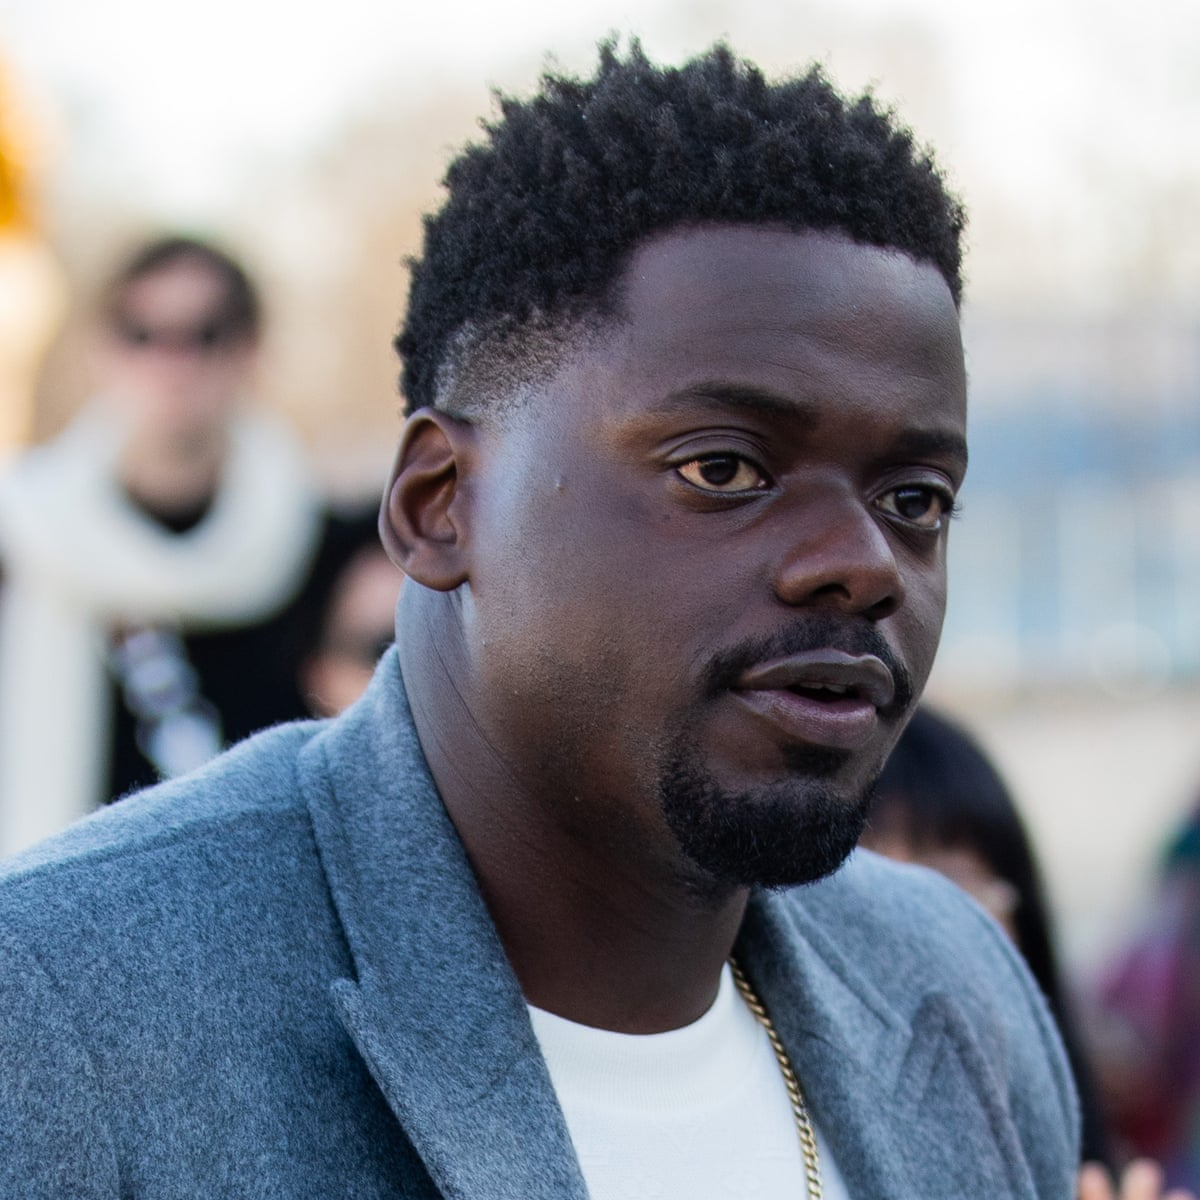 Actor Daniel Kaluuya Says He Is Tired Of Being Asked About Race Daniel Kaluuya The Guardian